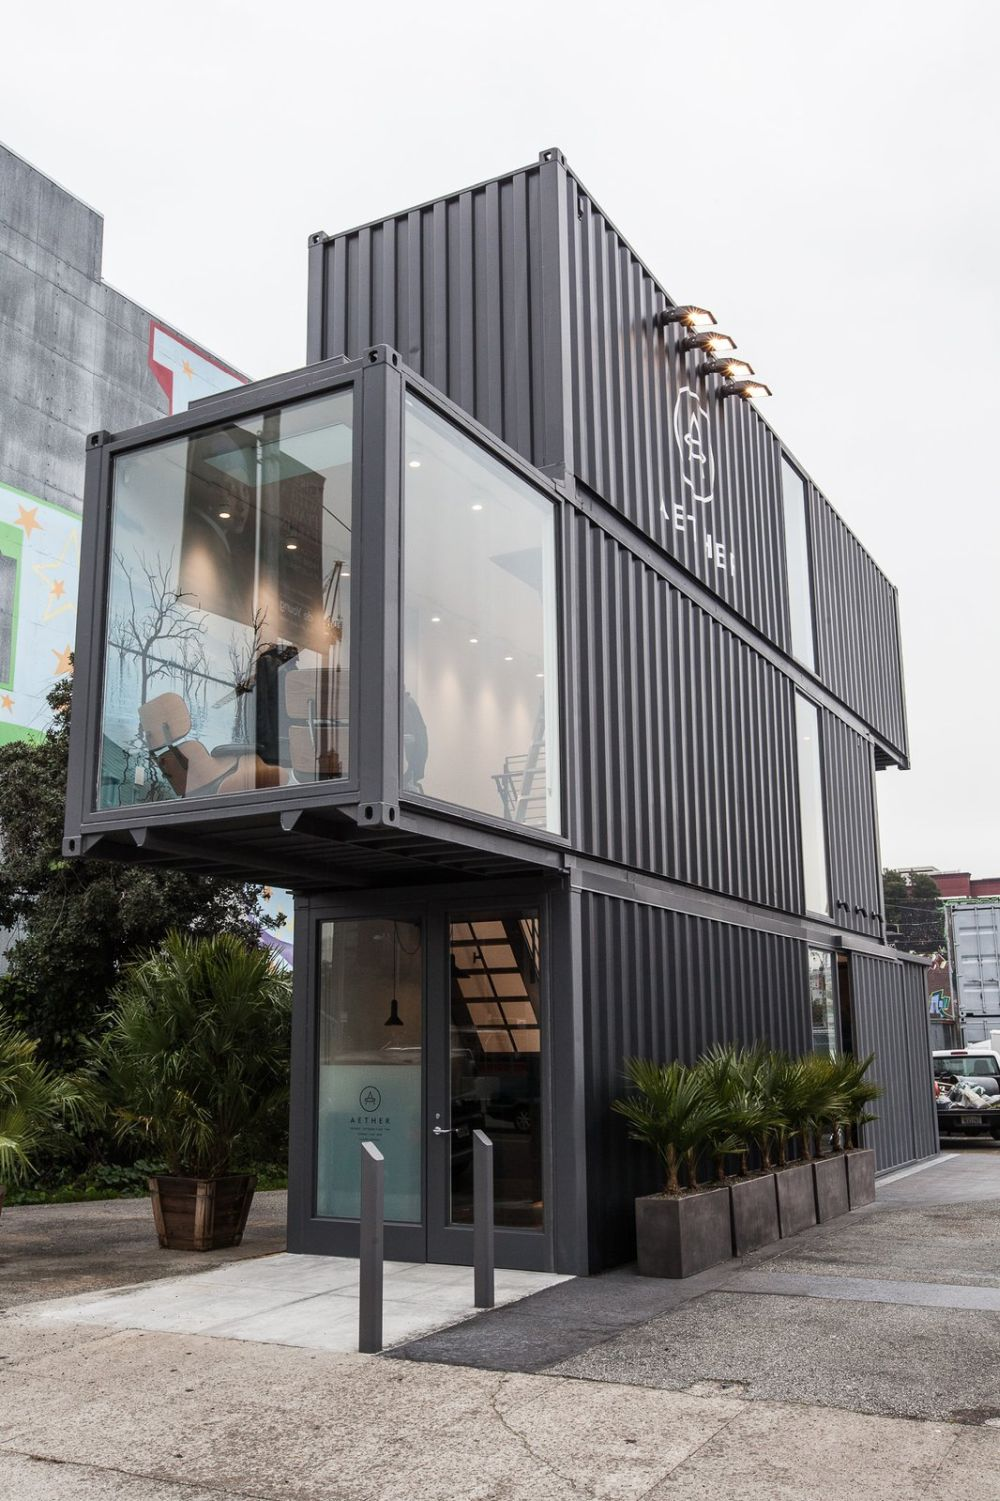 1562918670 350 3 amazing retail stores build out of reclaimed shipping containers - 3 Amazing Retail Stores Build Out Of Reclaimed Shipping Containers